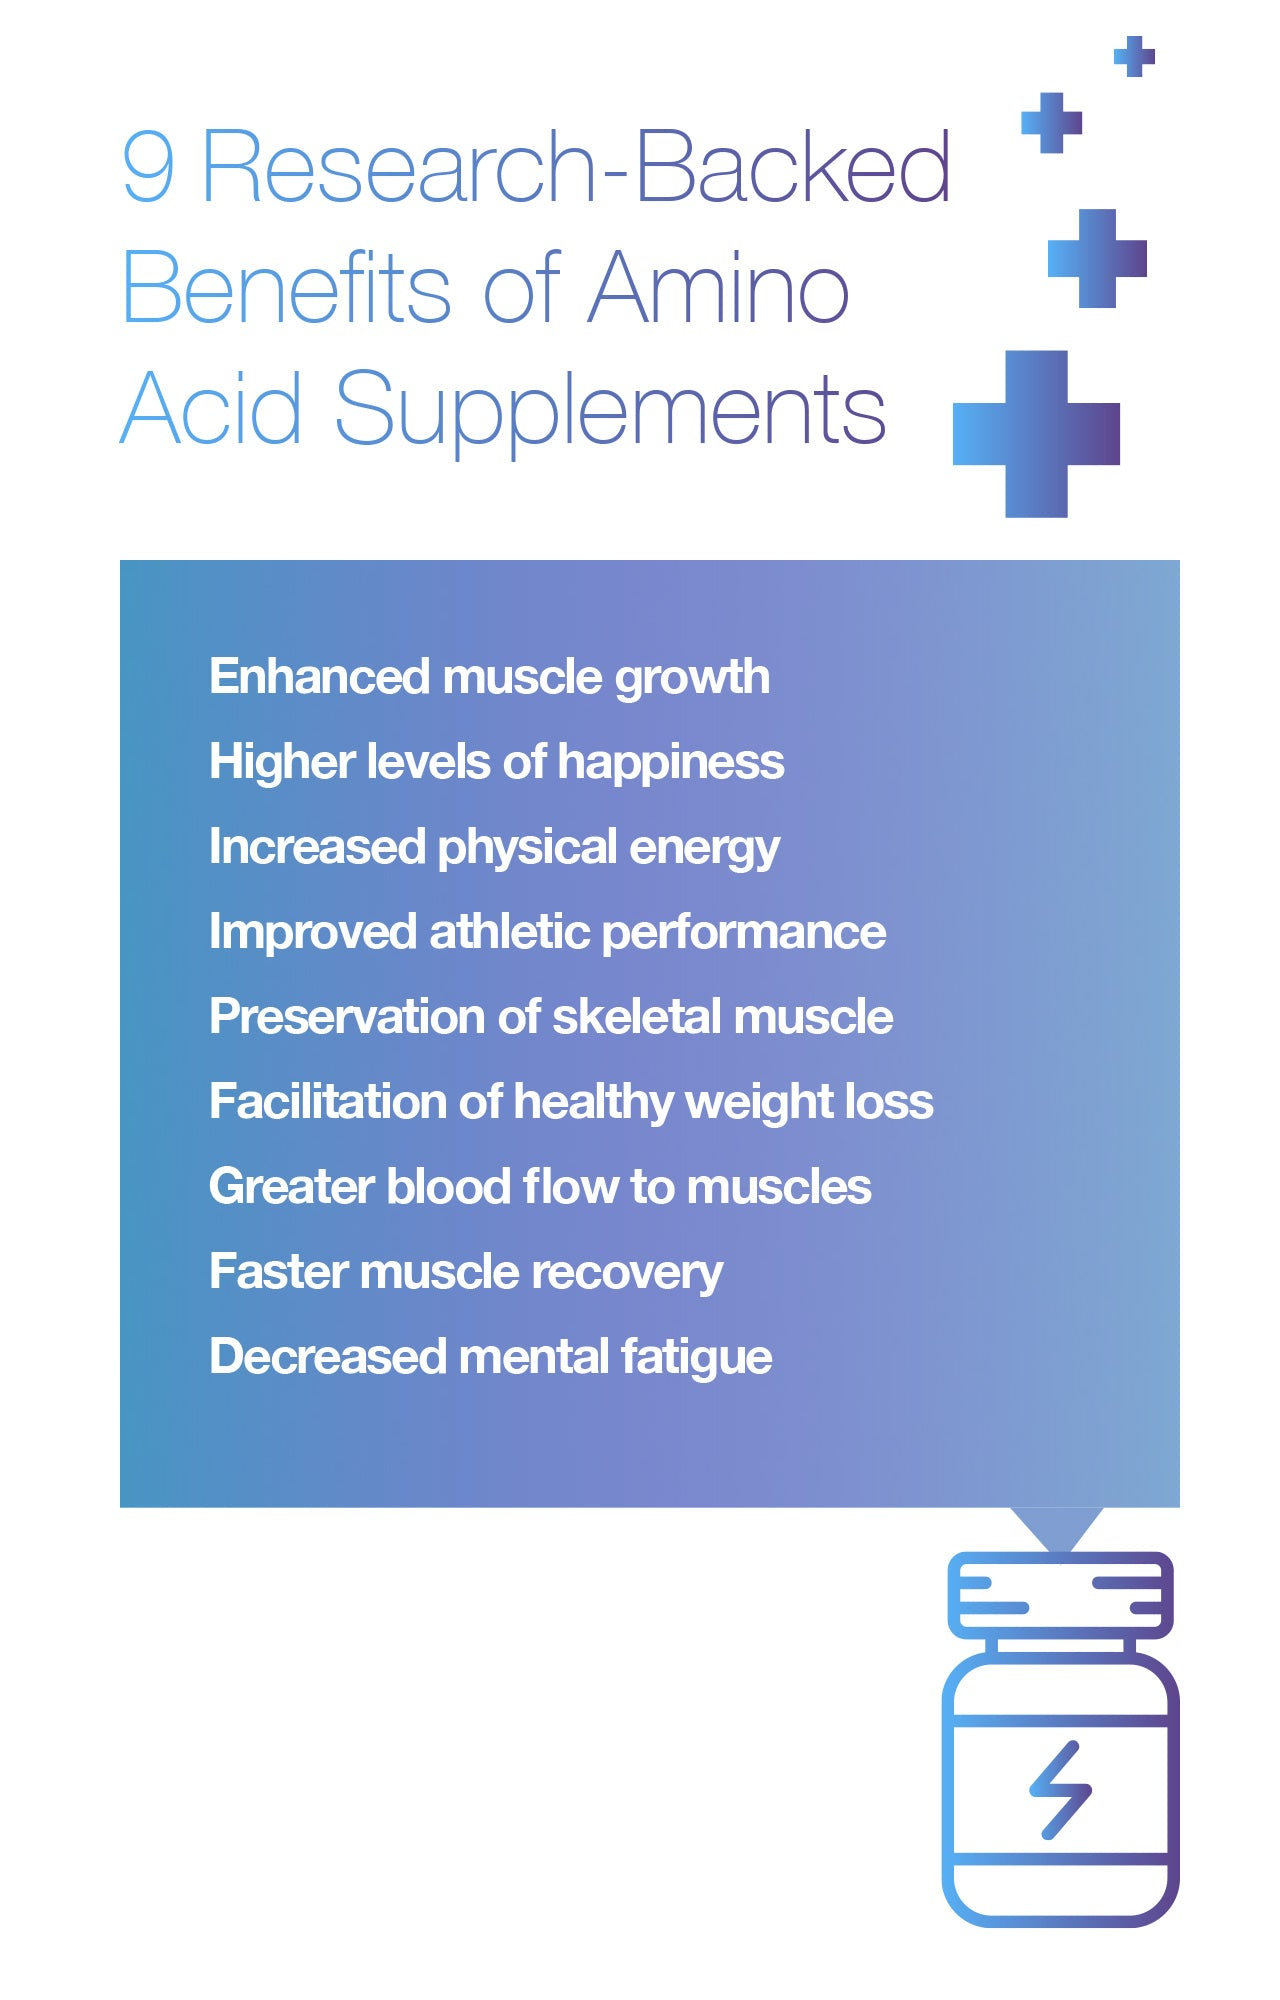 9 Research-Backed Benefits of Amino Acid Supplements